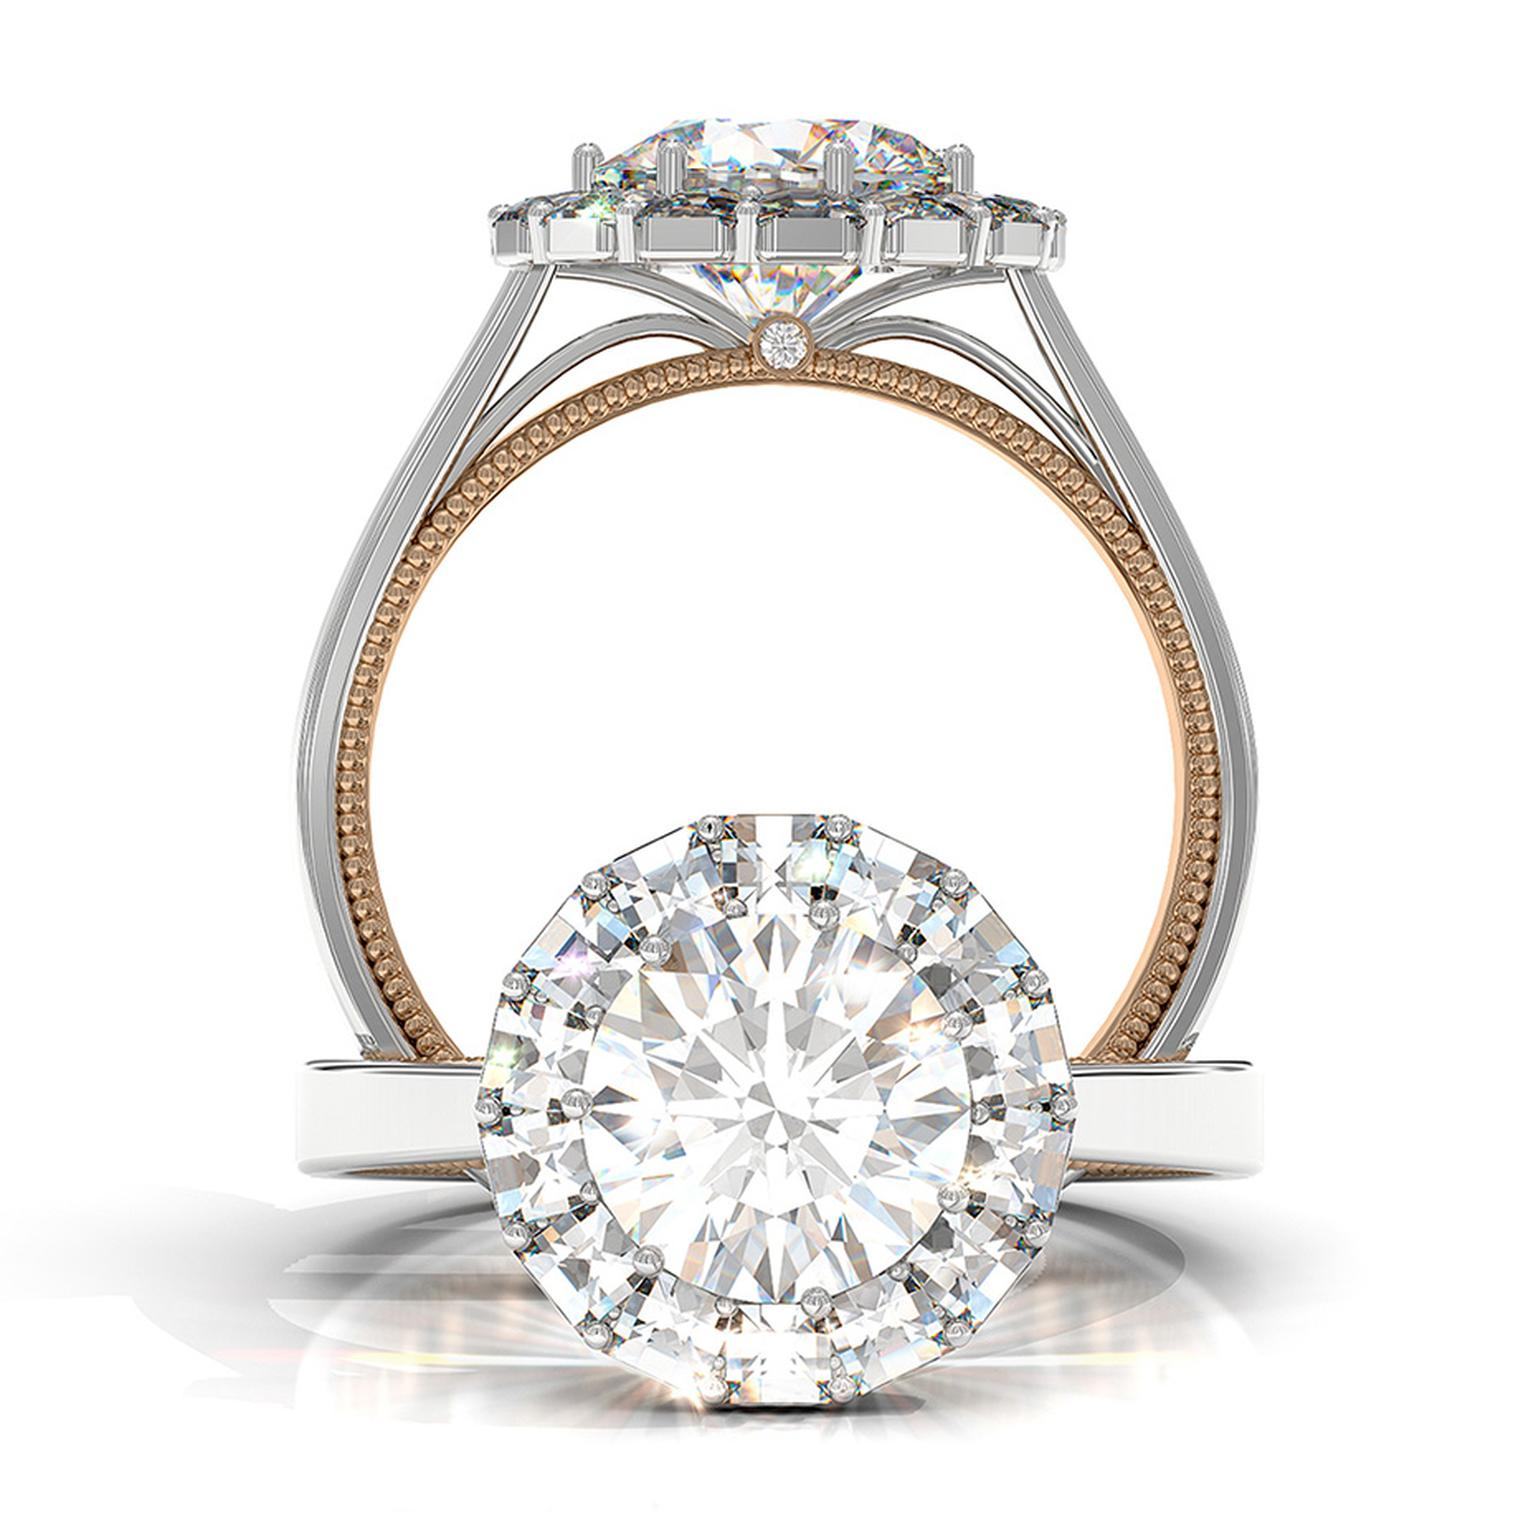 Bez Ambar Ring of Fire engagement ring in white and rose gold, set with a 1.50ct round brilliant cut diamond encircled by a halo of his signature Blaze-cut diamonds, which add fire and give the appearance of a bigger central stone.